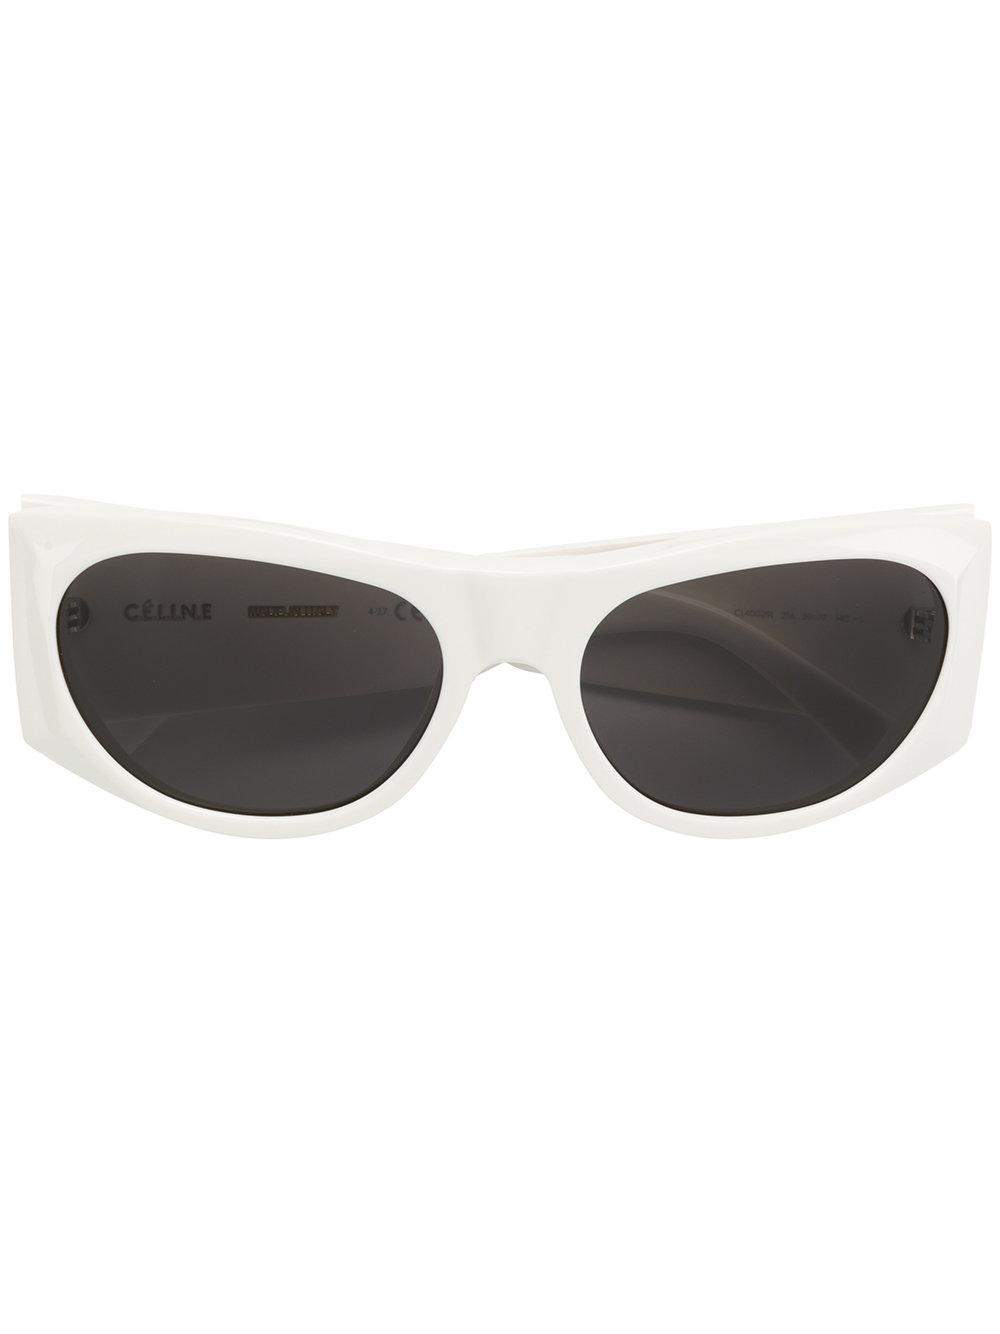 f142438ba749 White oval sunglasses from Céline Eyewear featuring dark tinted lenses